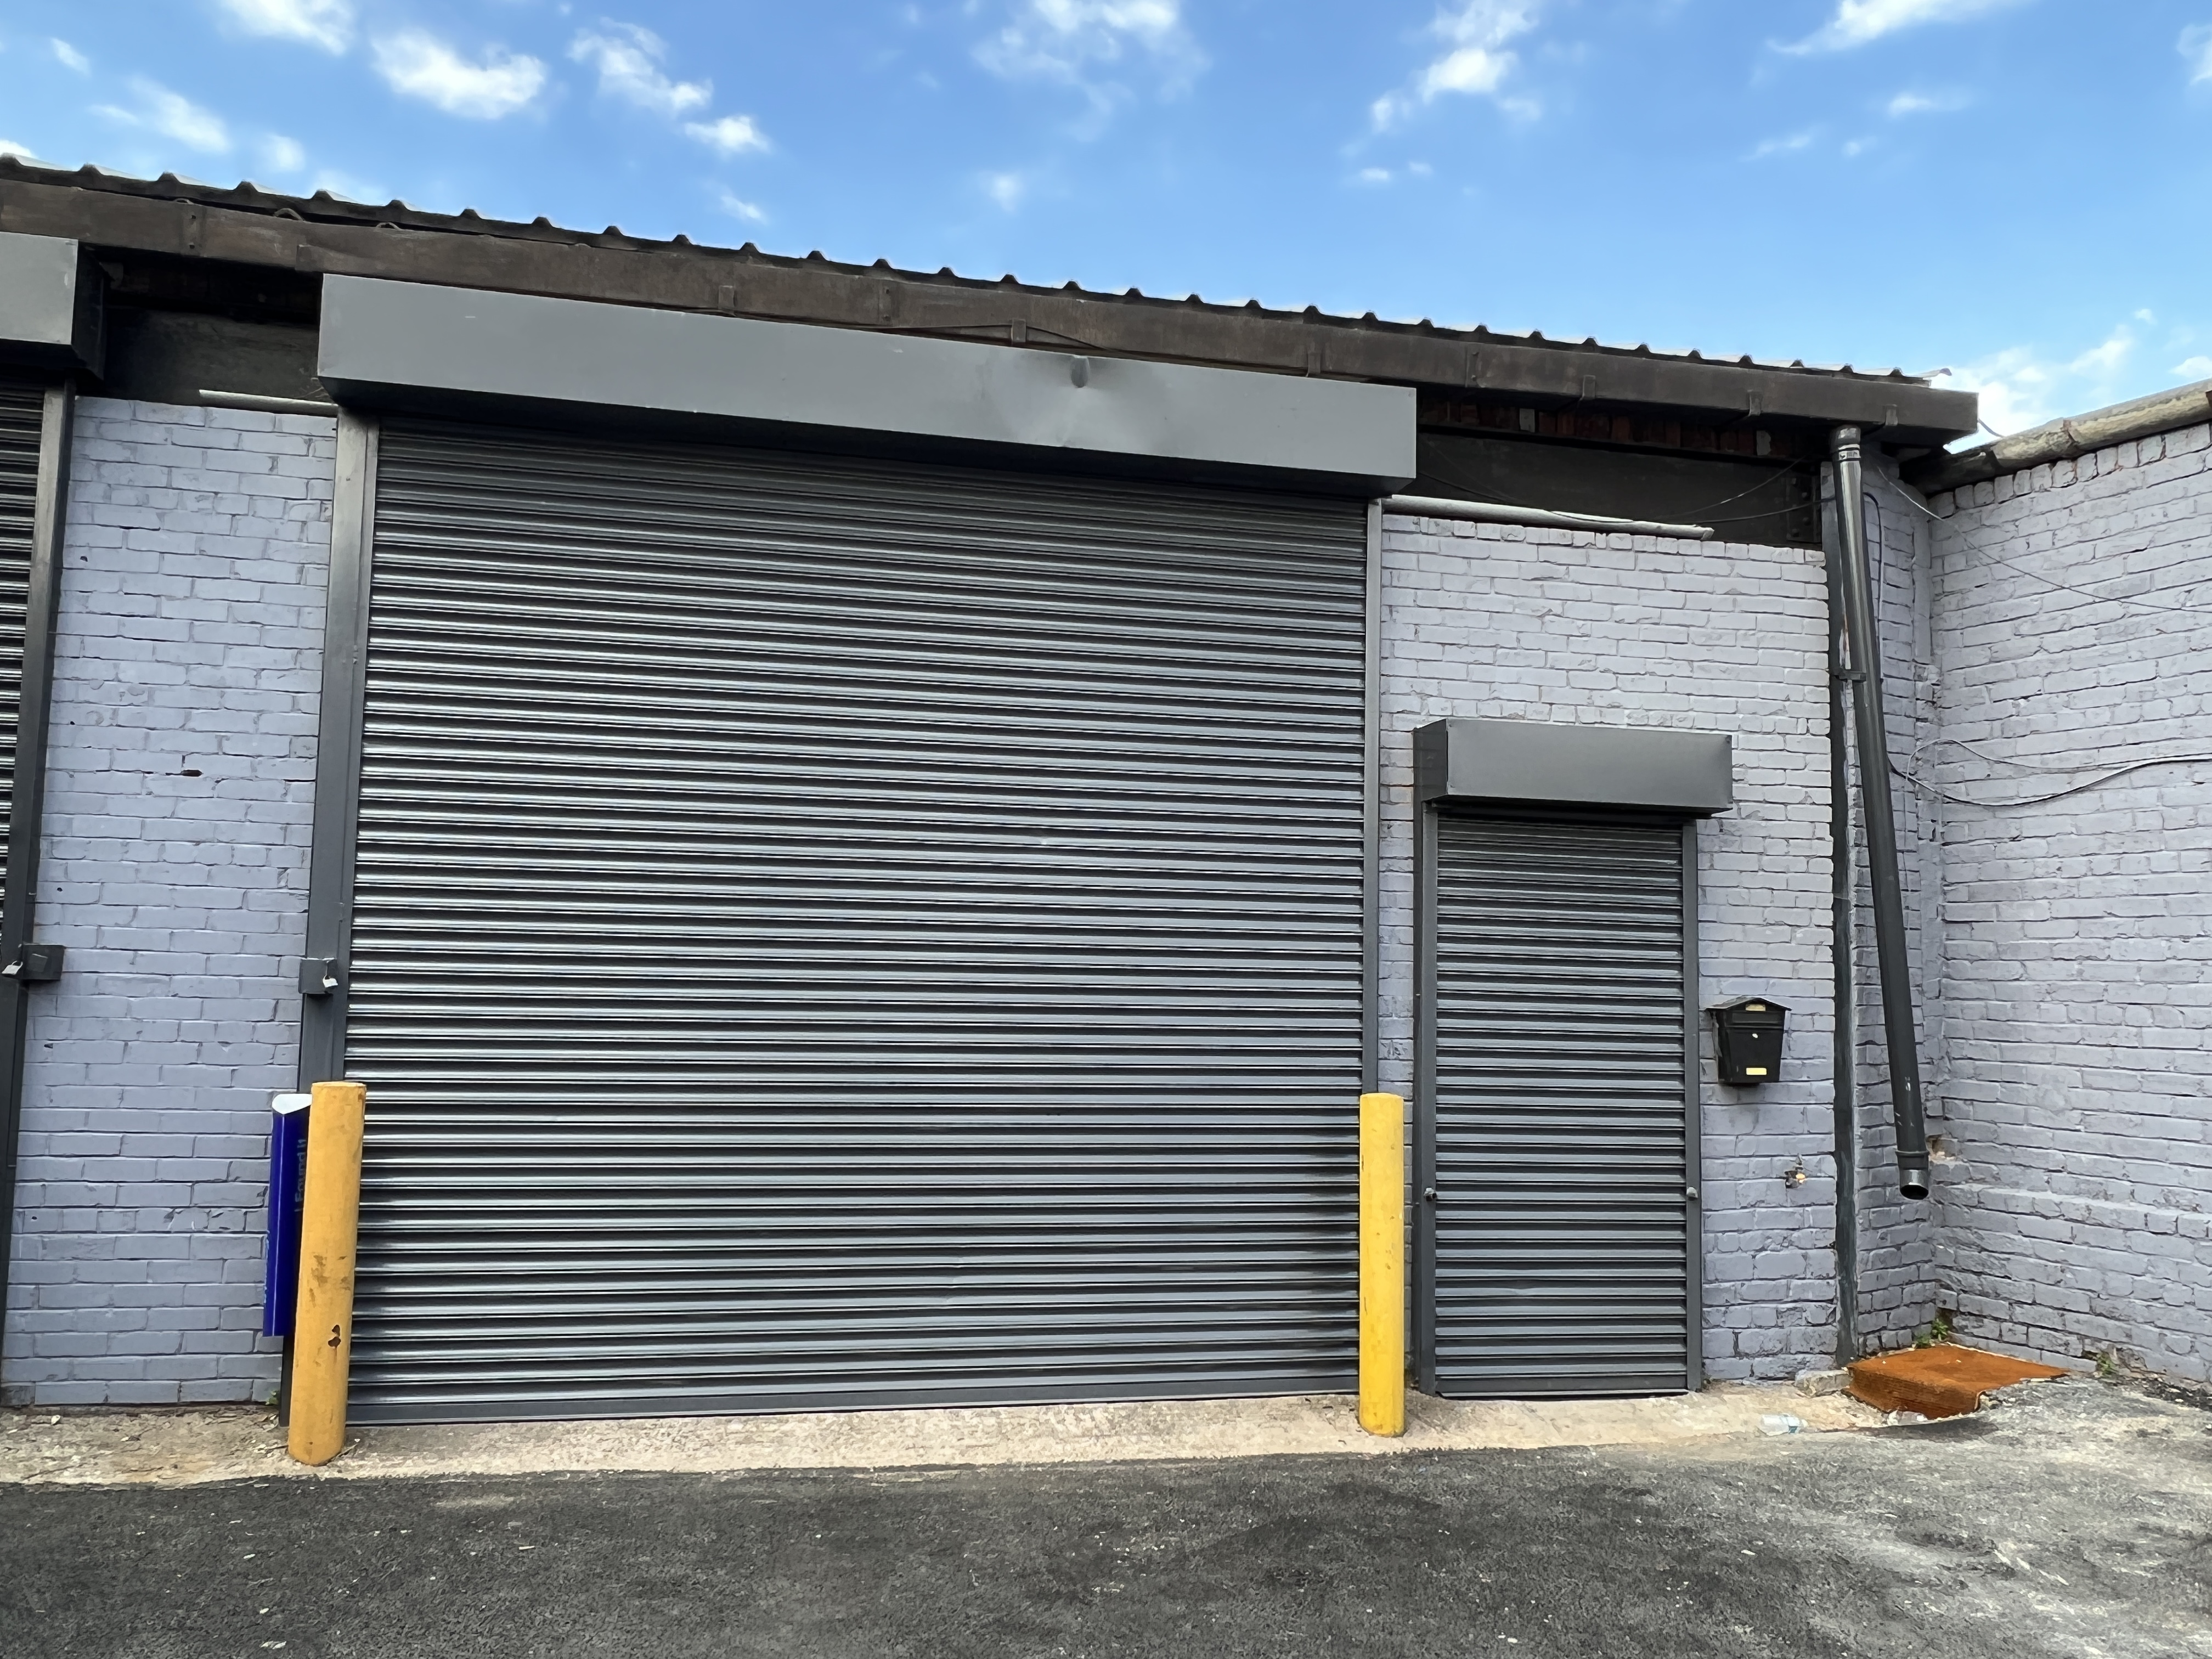 0 bed Light Industrial for rent in Walsall. From Hexagon Commercial Property